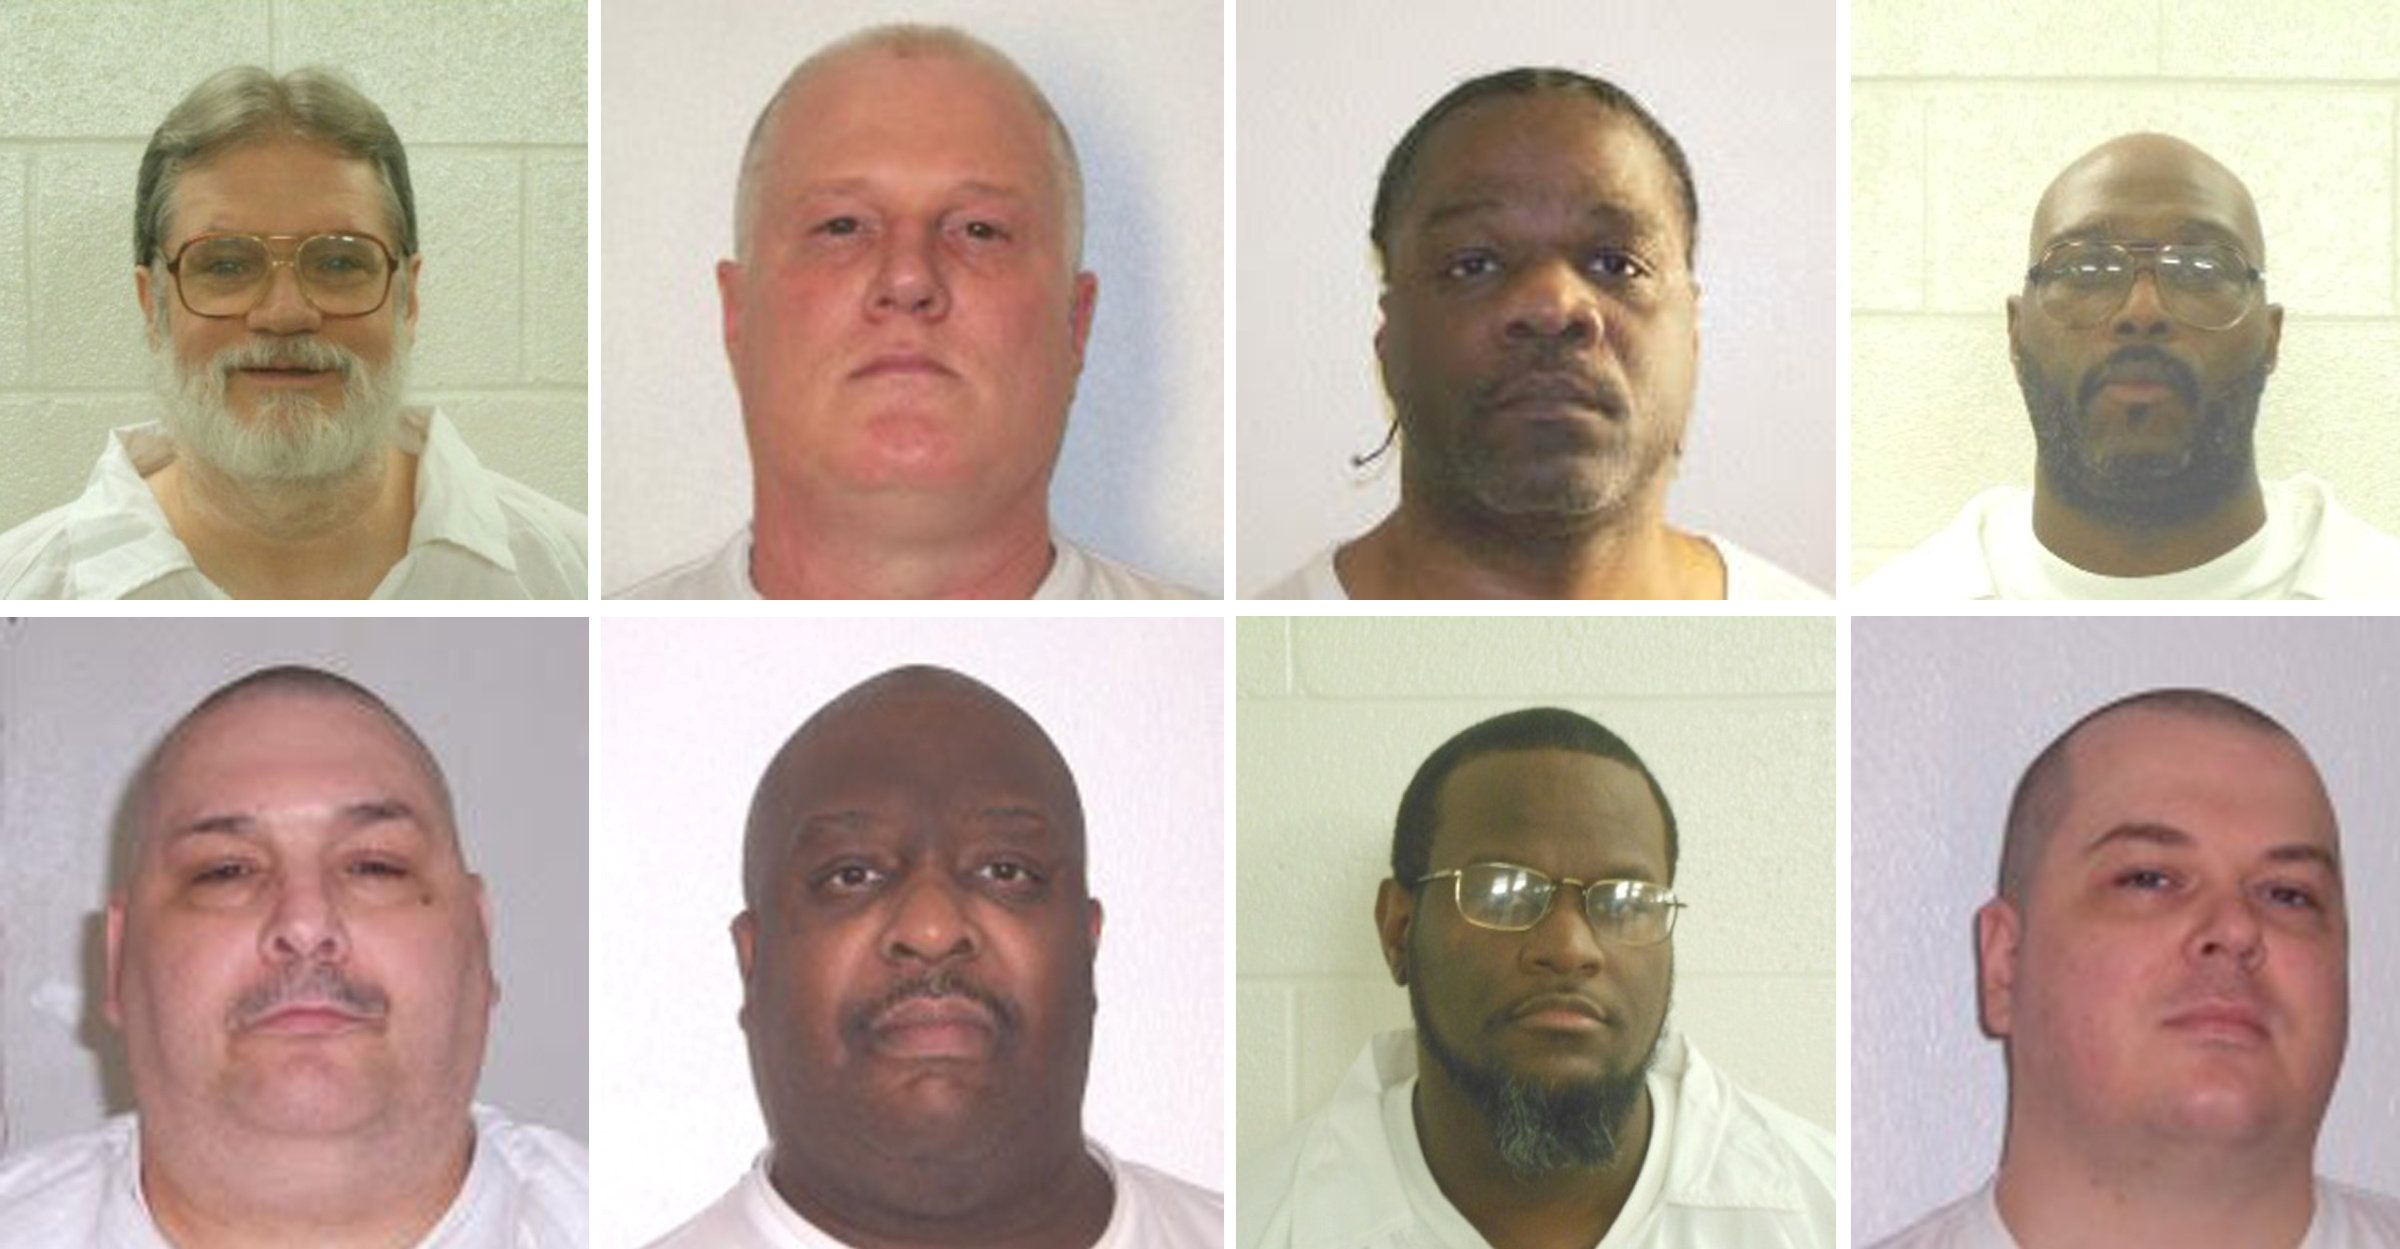 Inmates Bruce Ward(top row L to R), Don Davis, Ledell Lee, Stacy Johnson, Jack Jones (bottom row L to R), Marcel Williams, Ke